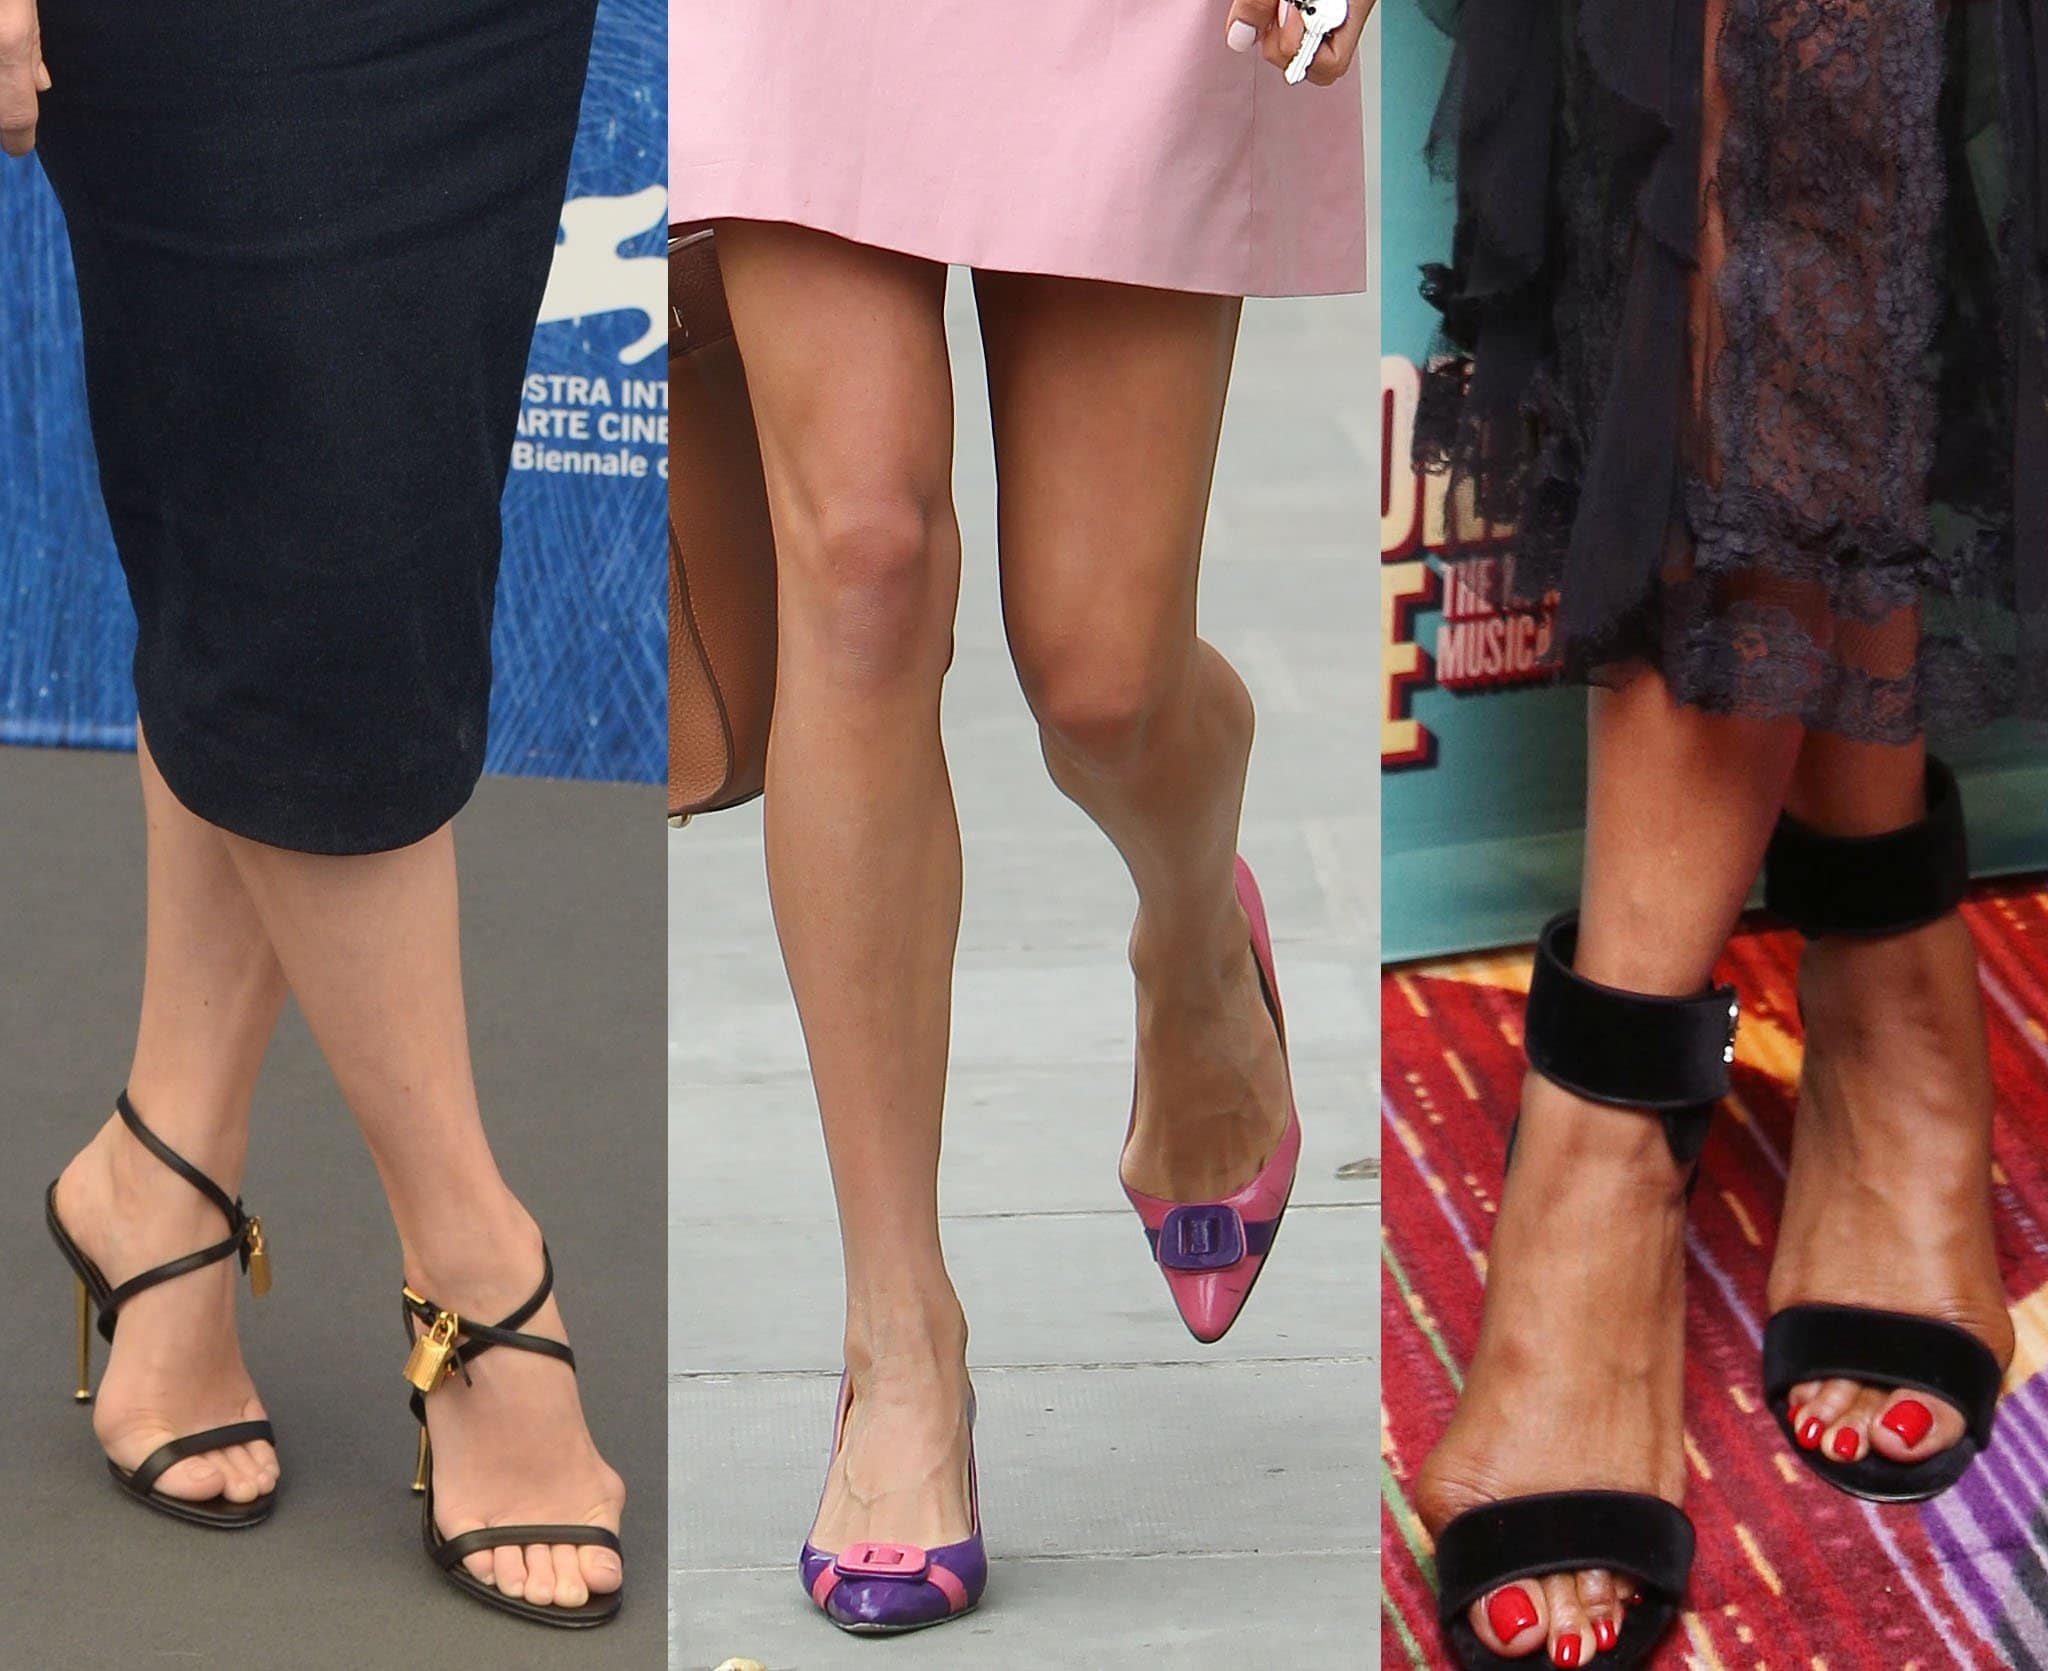 Celebrities (left to right: Amy Adams, Amal Clooney, and Naomi Campbell) with bunions